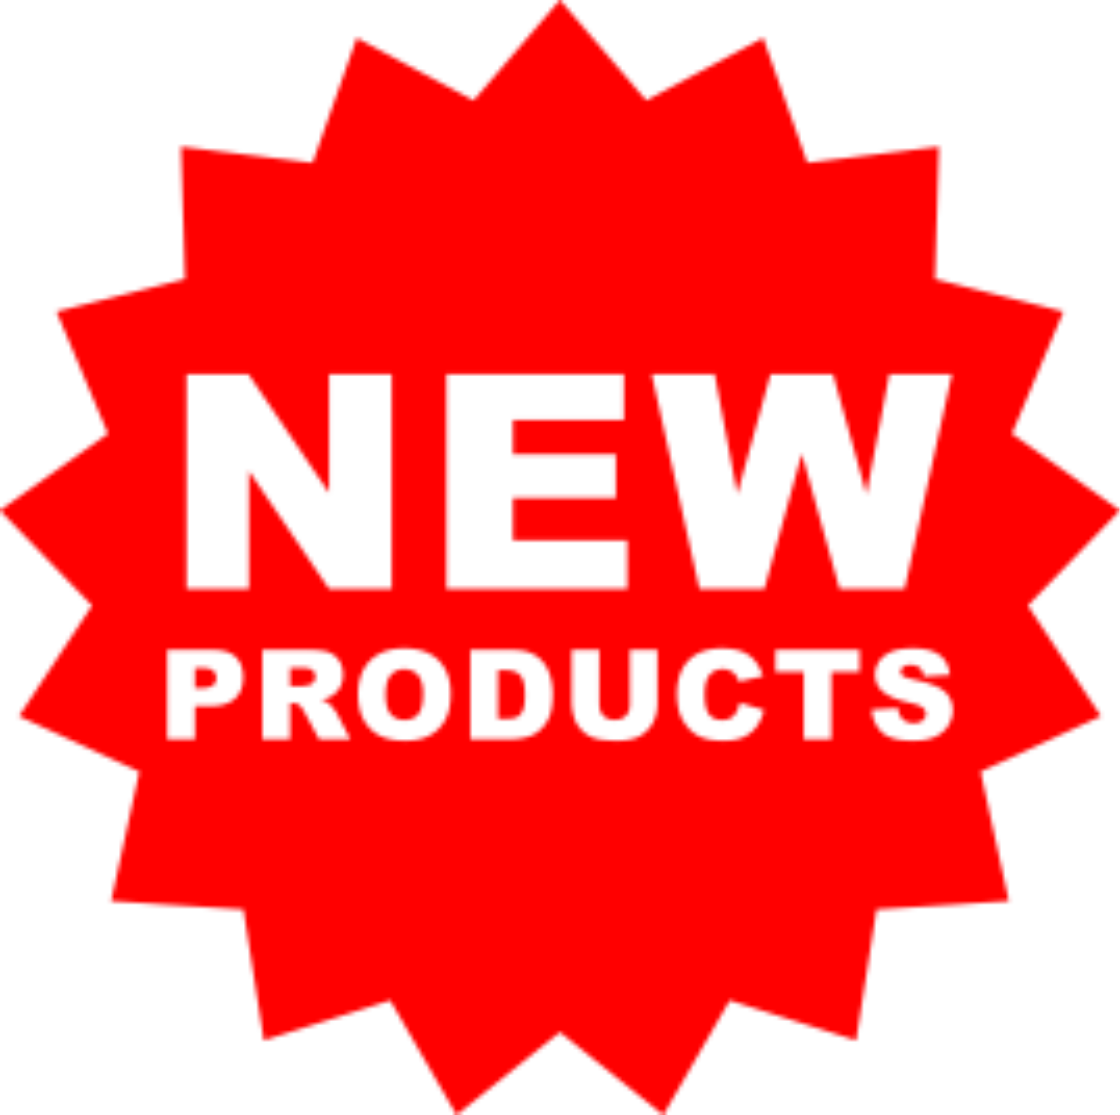 new products melling rh melling com new products on the market new products in the market